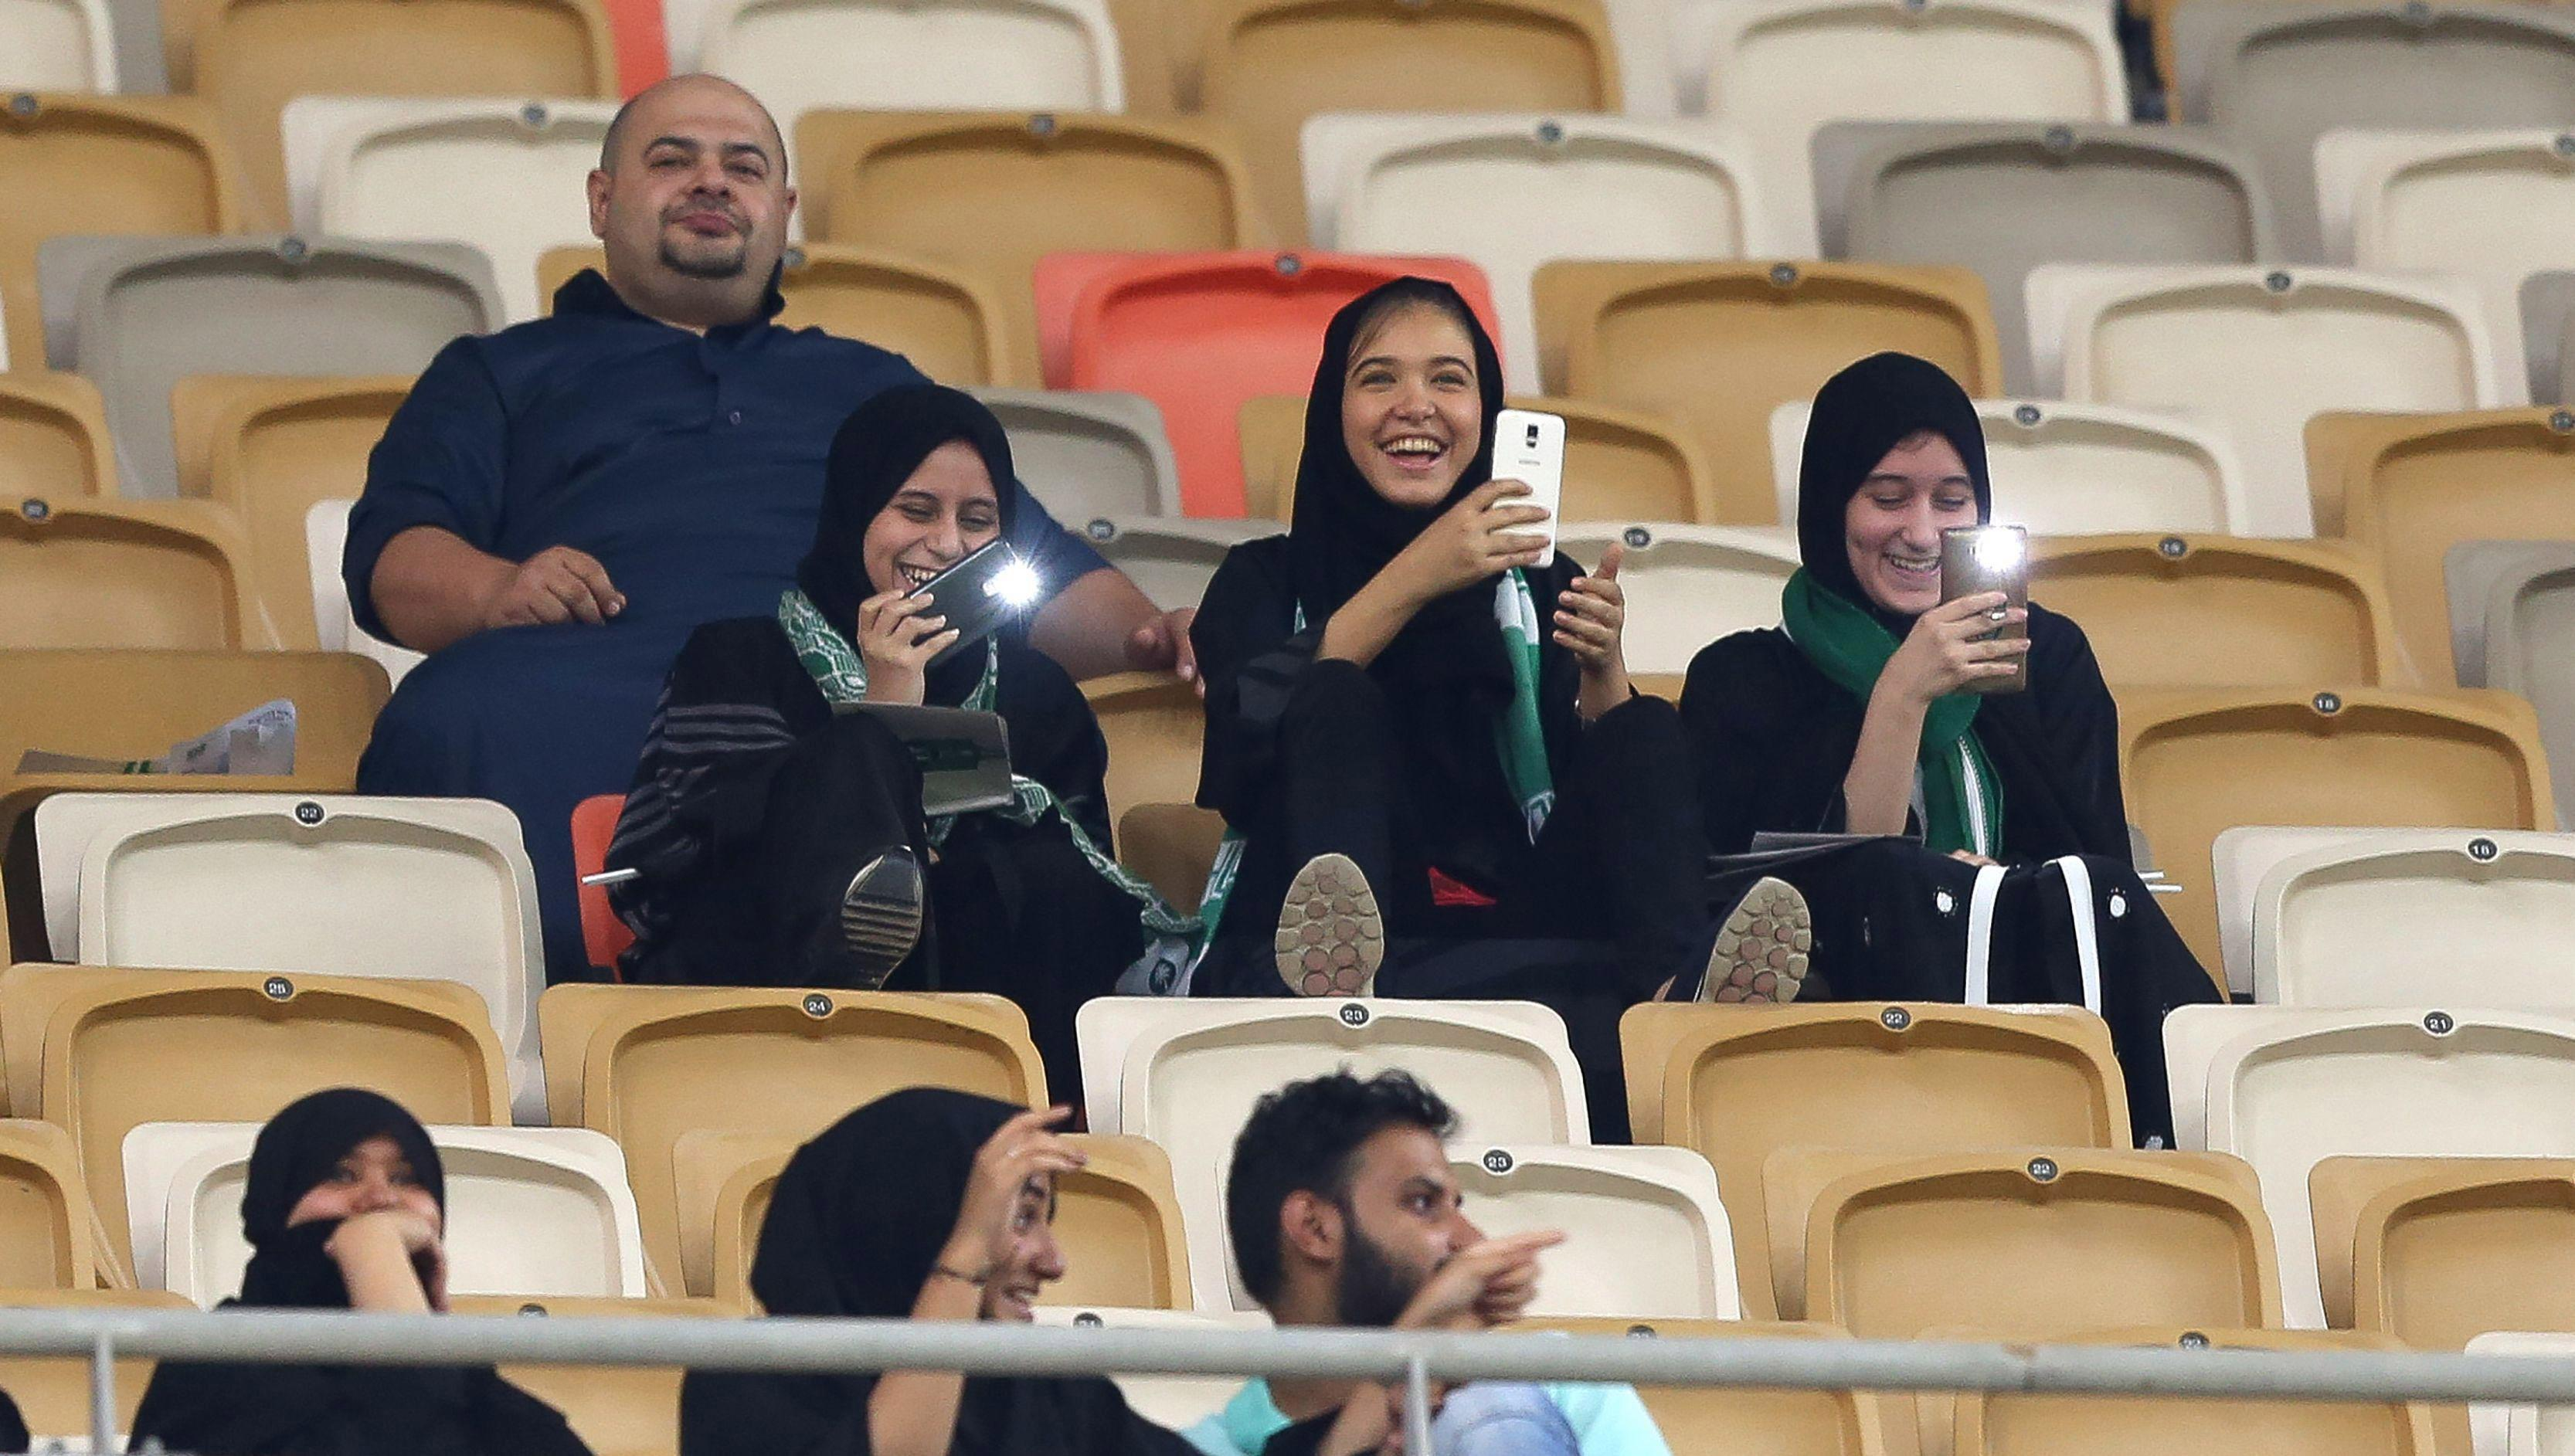 Saudi Arabian women enter football stadiums for first time EVER as they turn up for crunch match between local stars